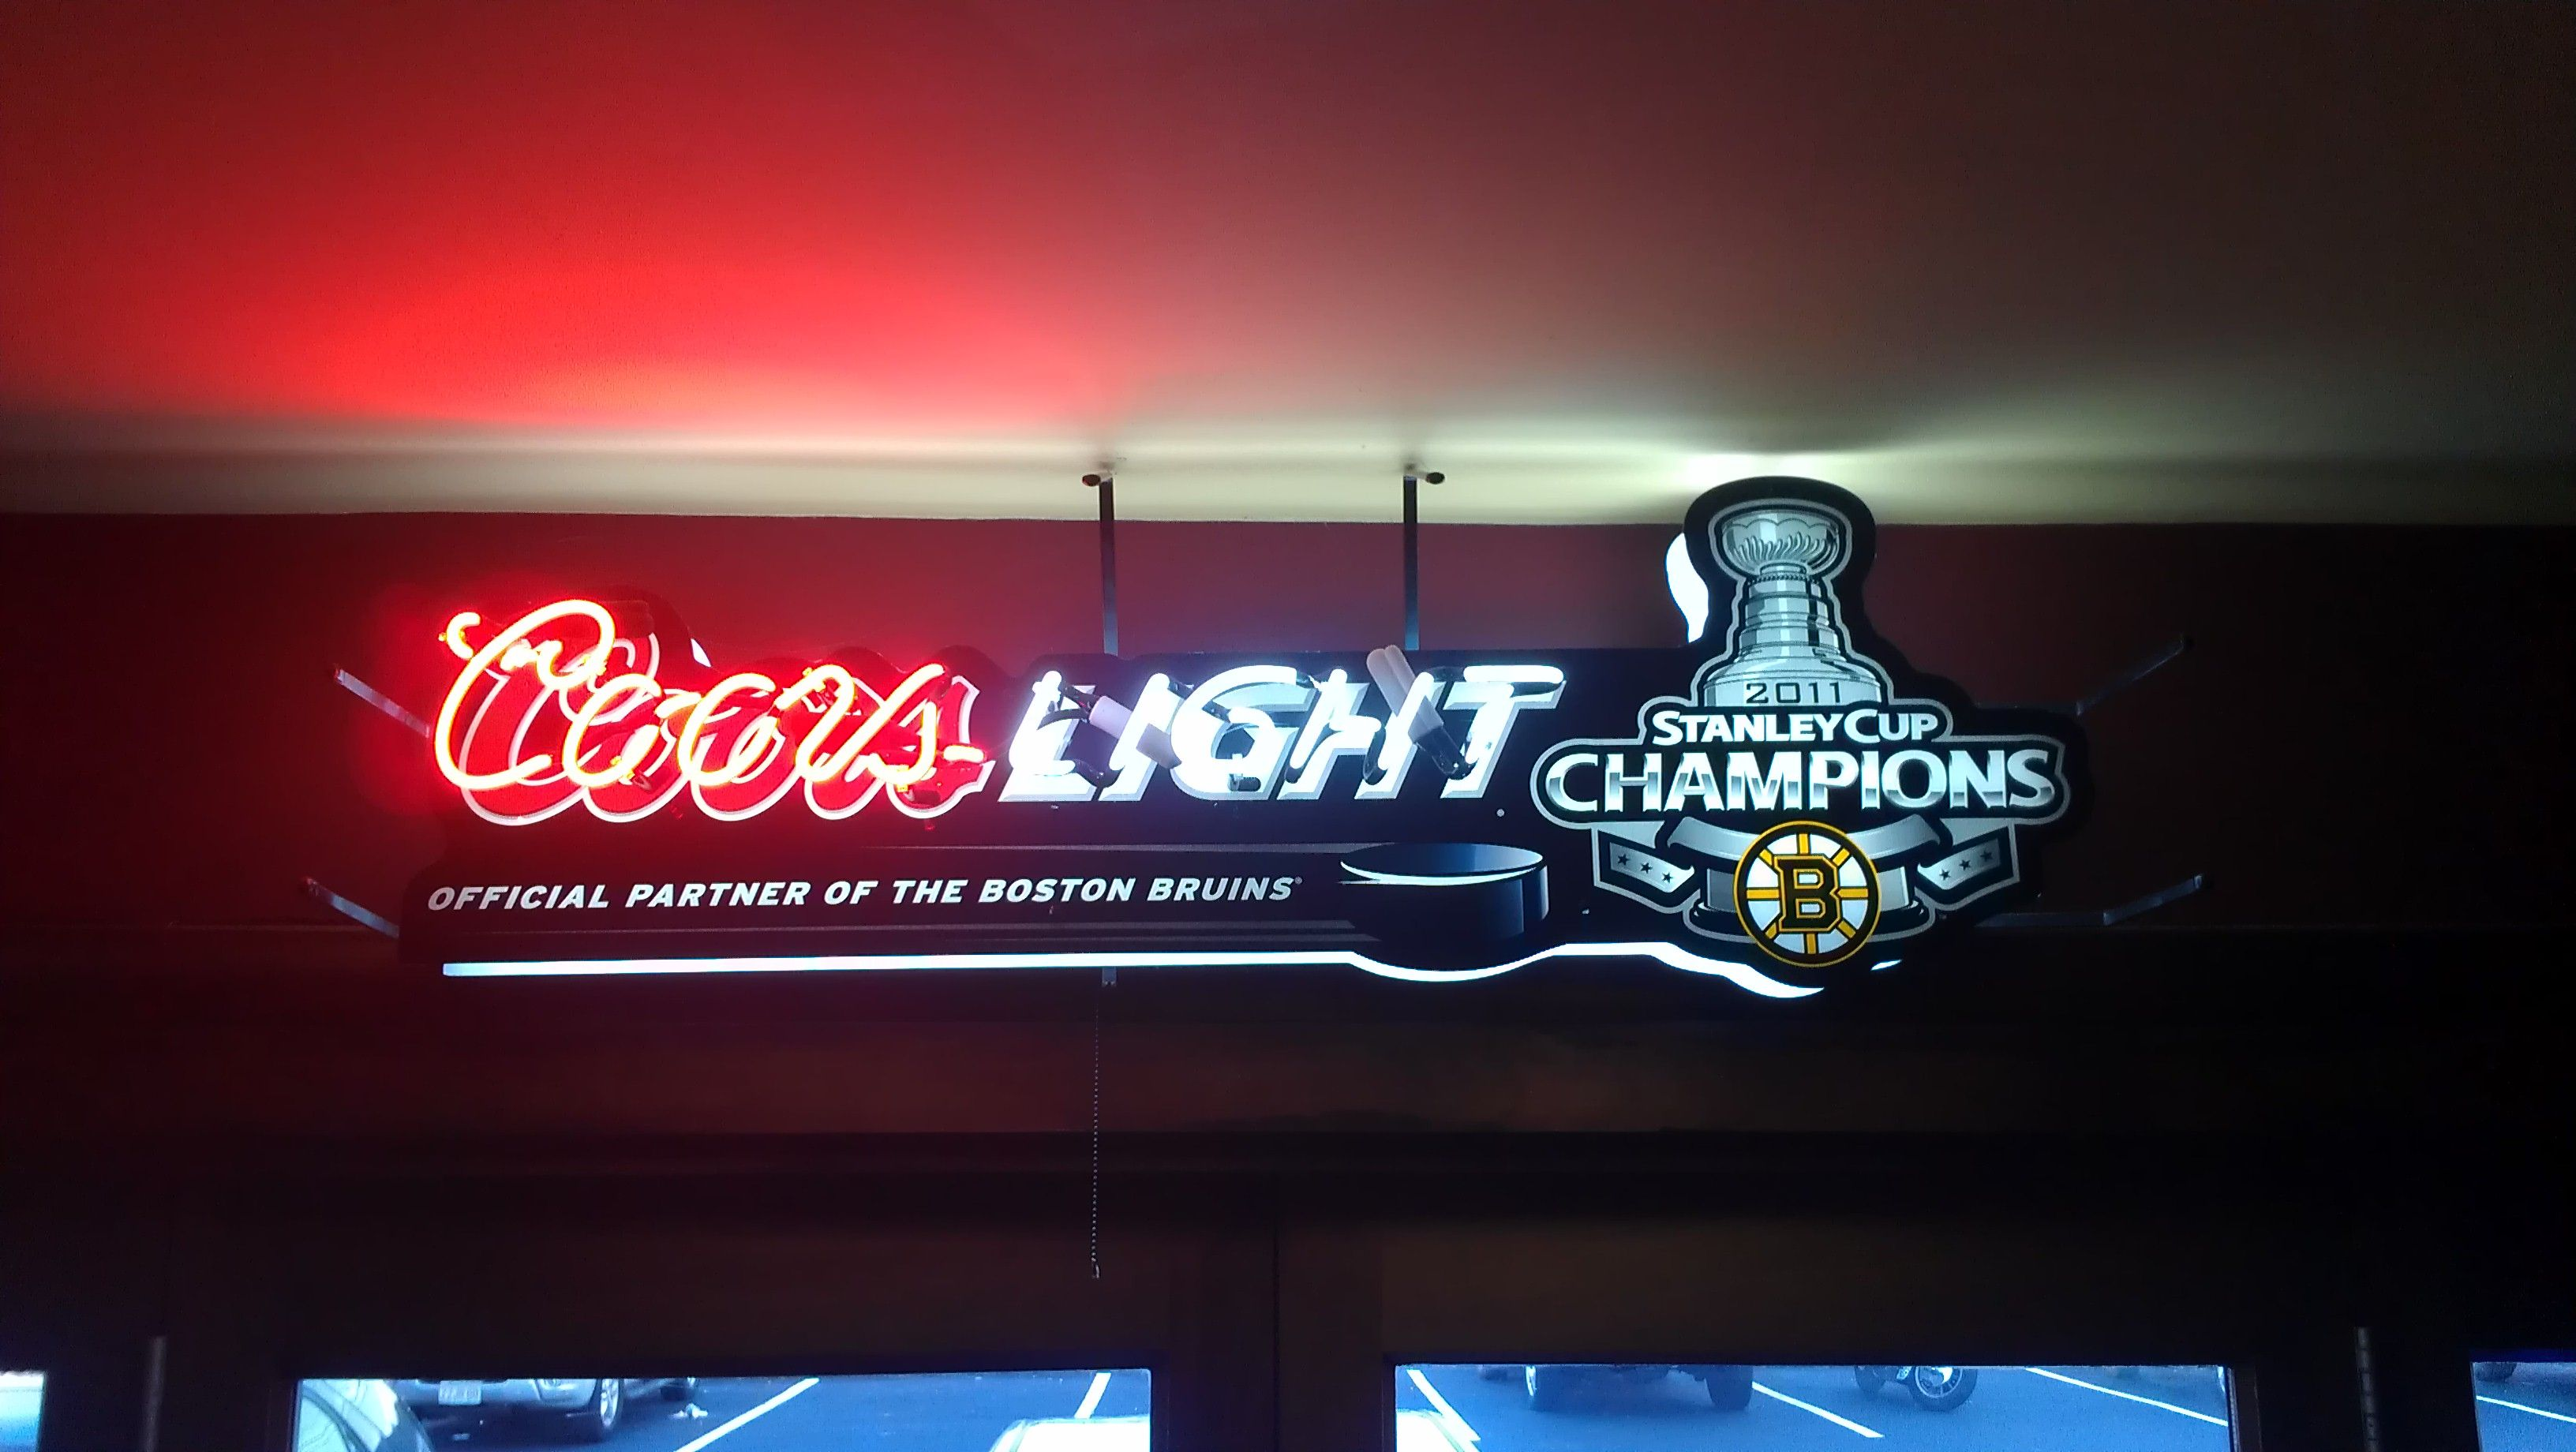 Coors Light Boston Bruins Neon sign at a restaurant in Cape Cod friggin awesome